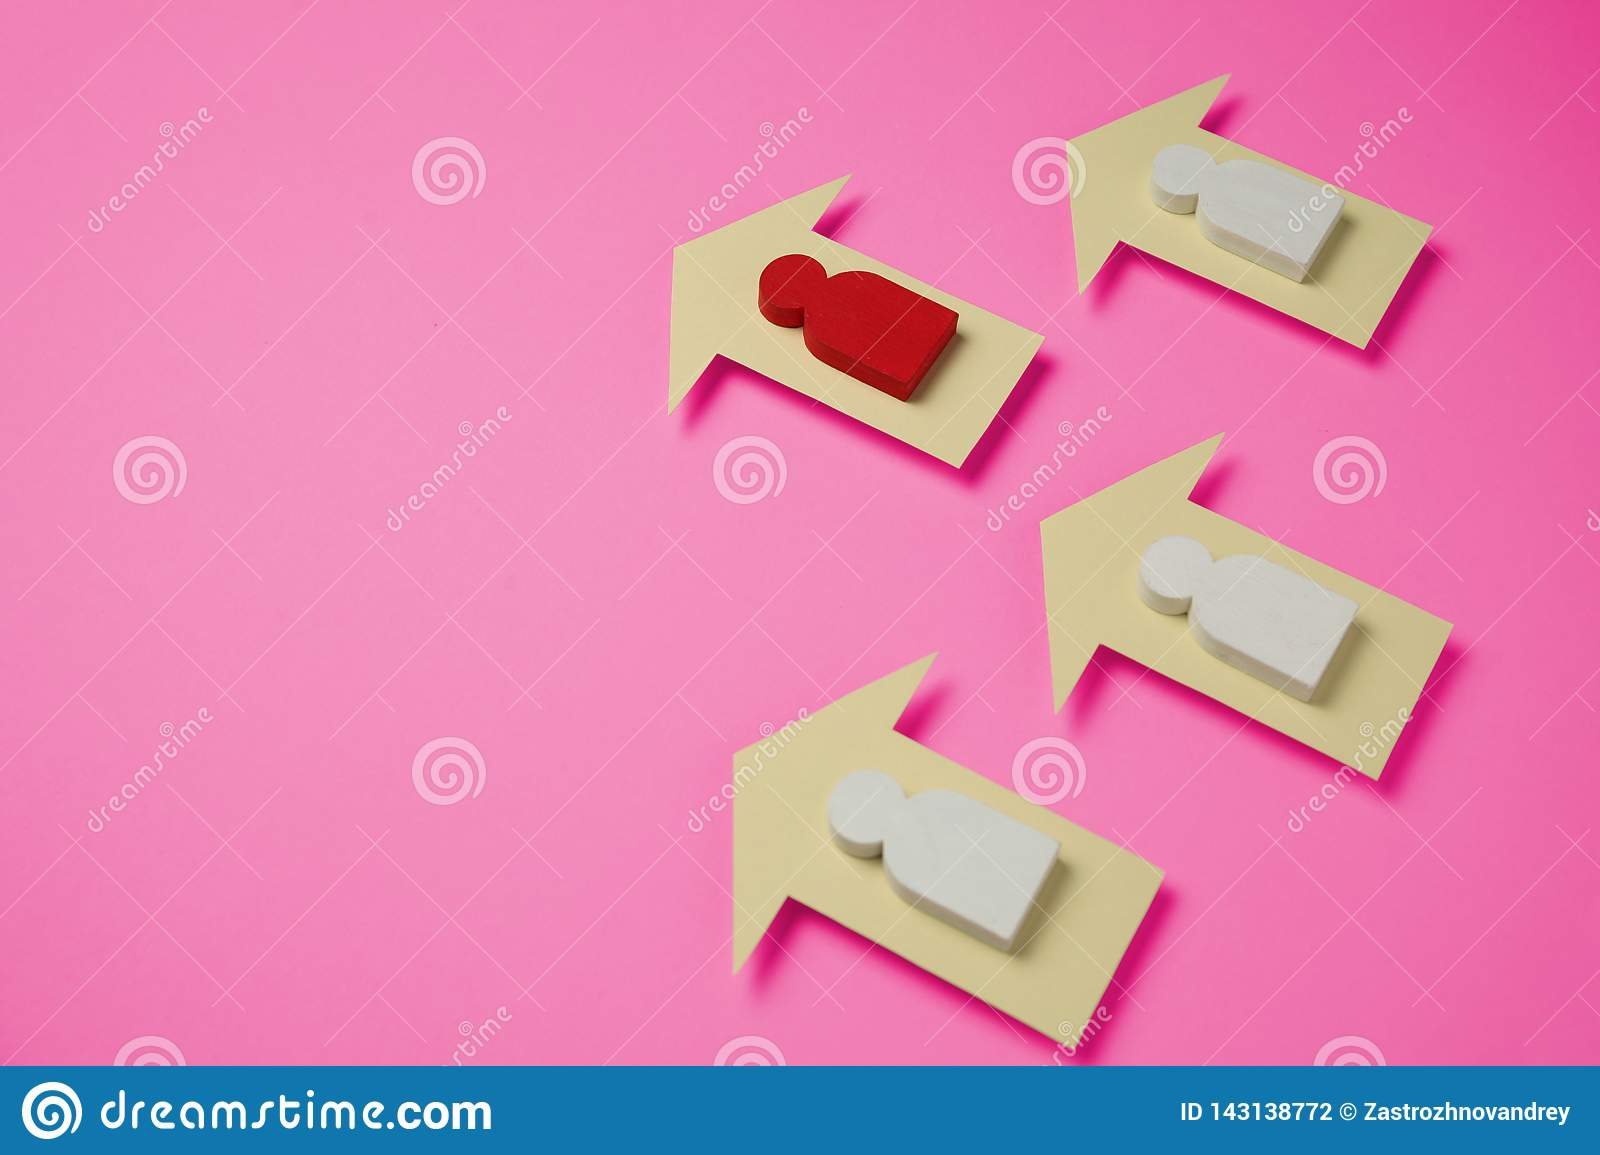 Figures of people and arrows on plastic pink background. Women`s achievements in life and business